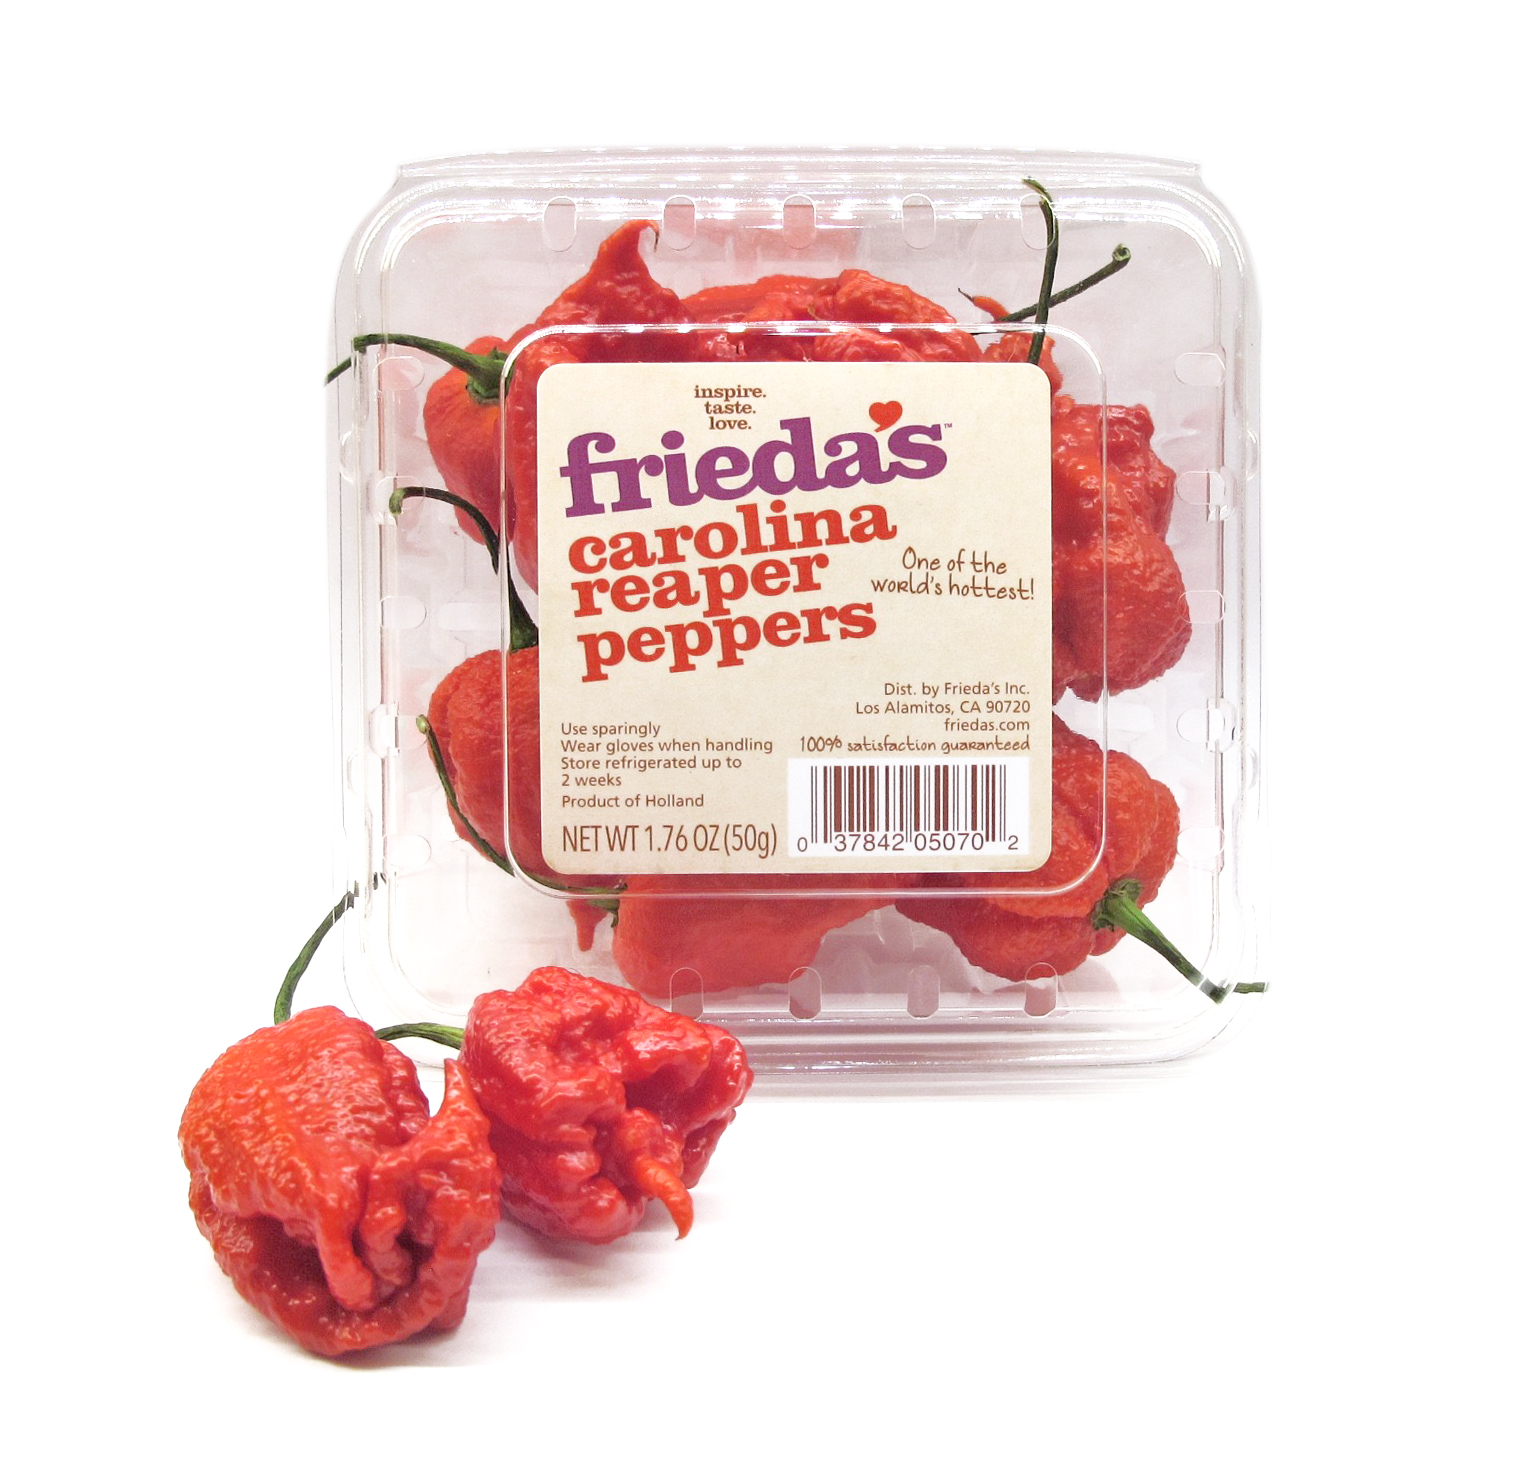 Carolina Reaper Peppers Image